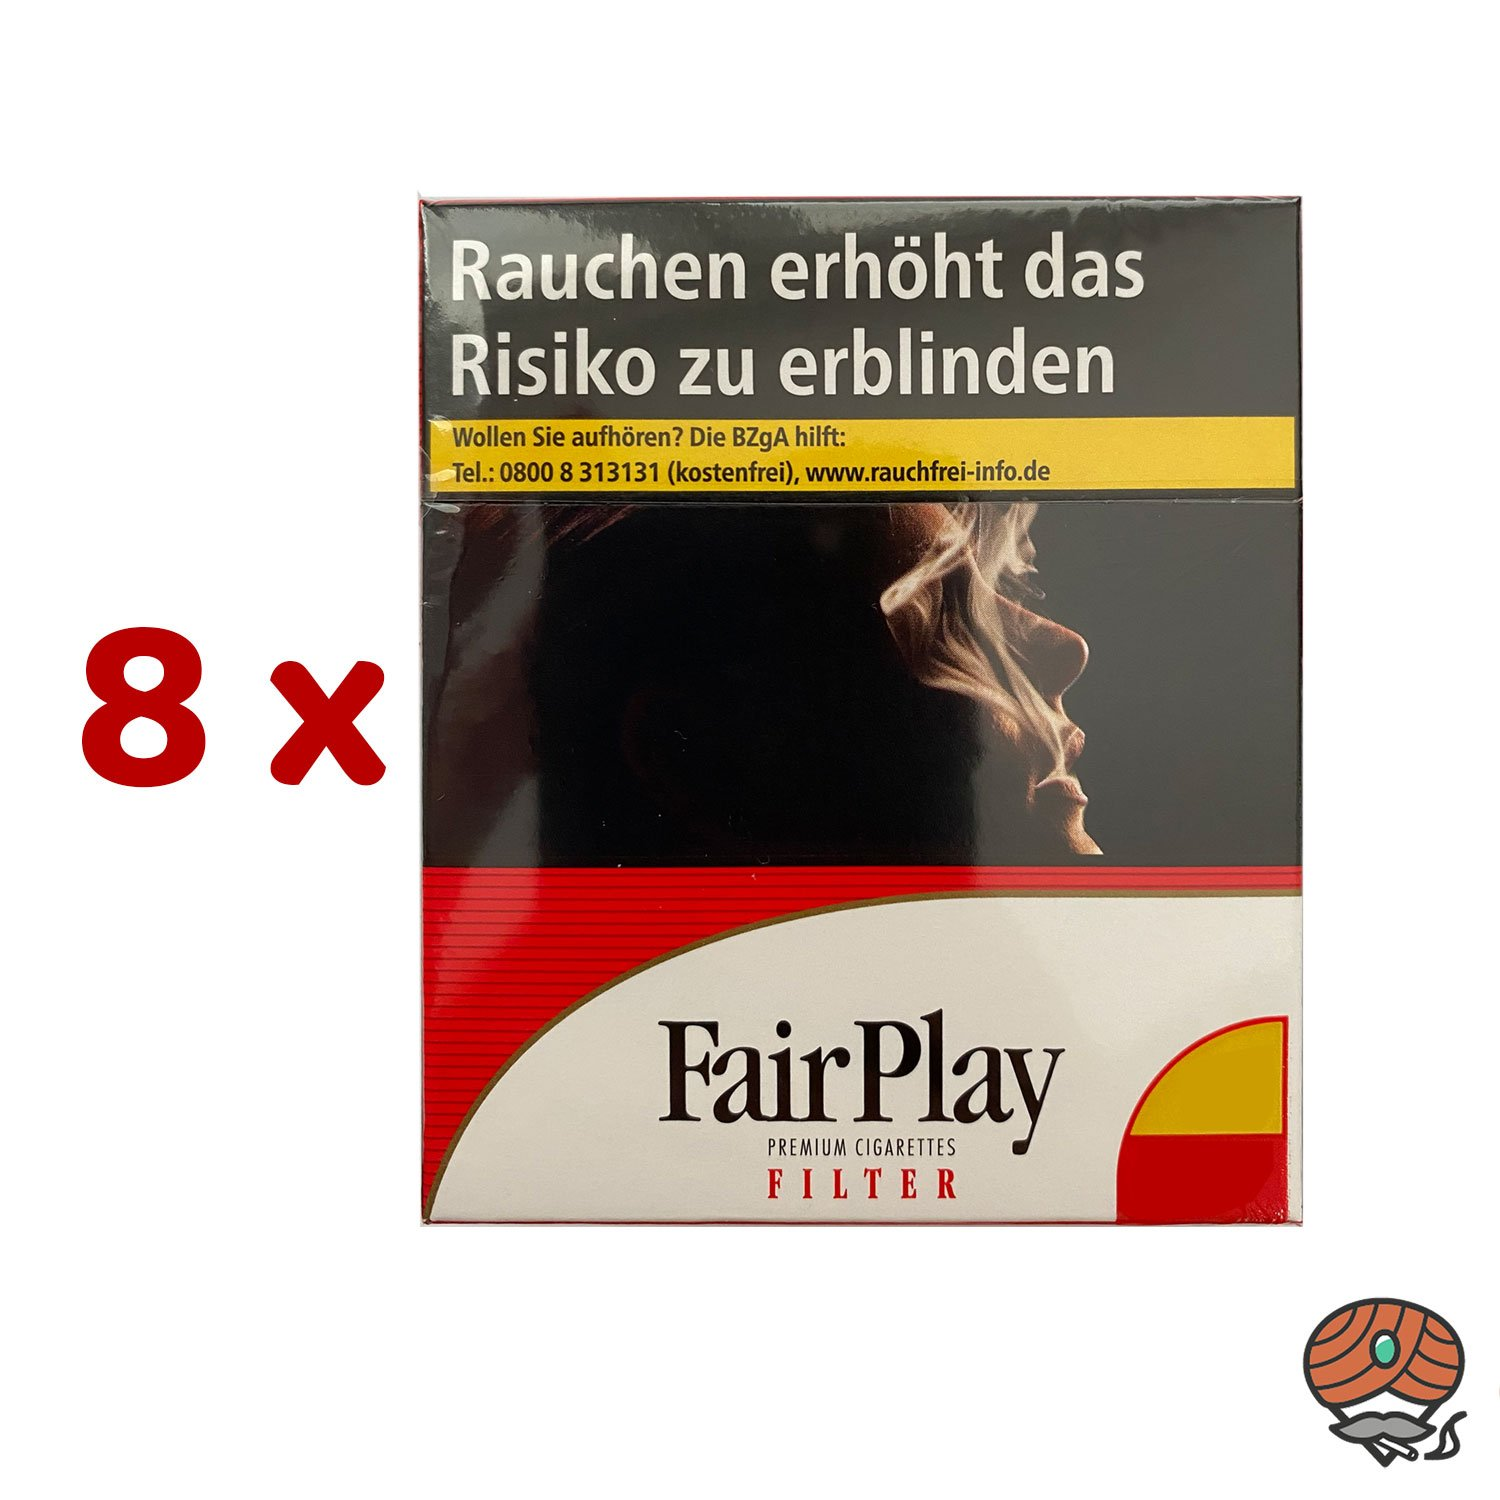 Stange FairPlay Full Flavor Giga Filter Zigaretten 8 x 35 Stück